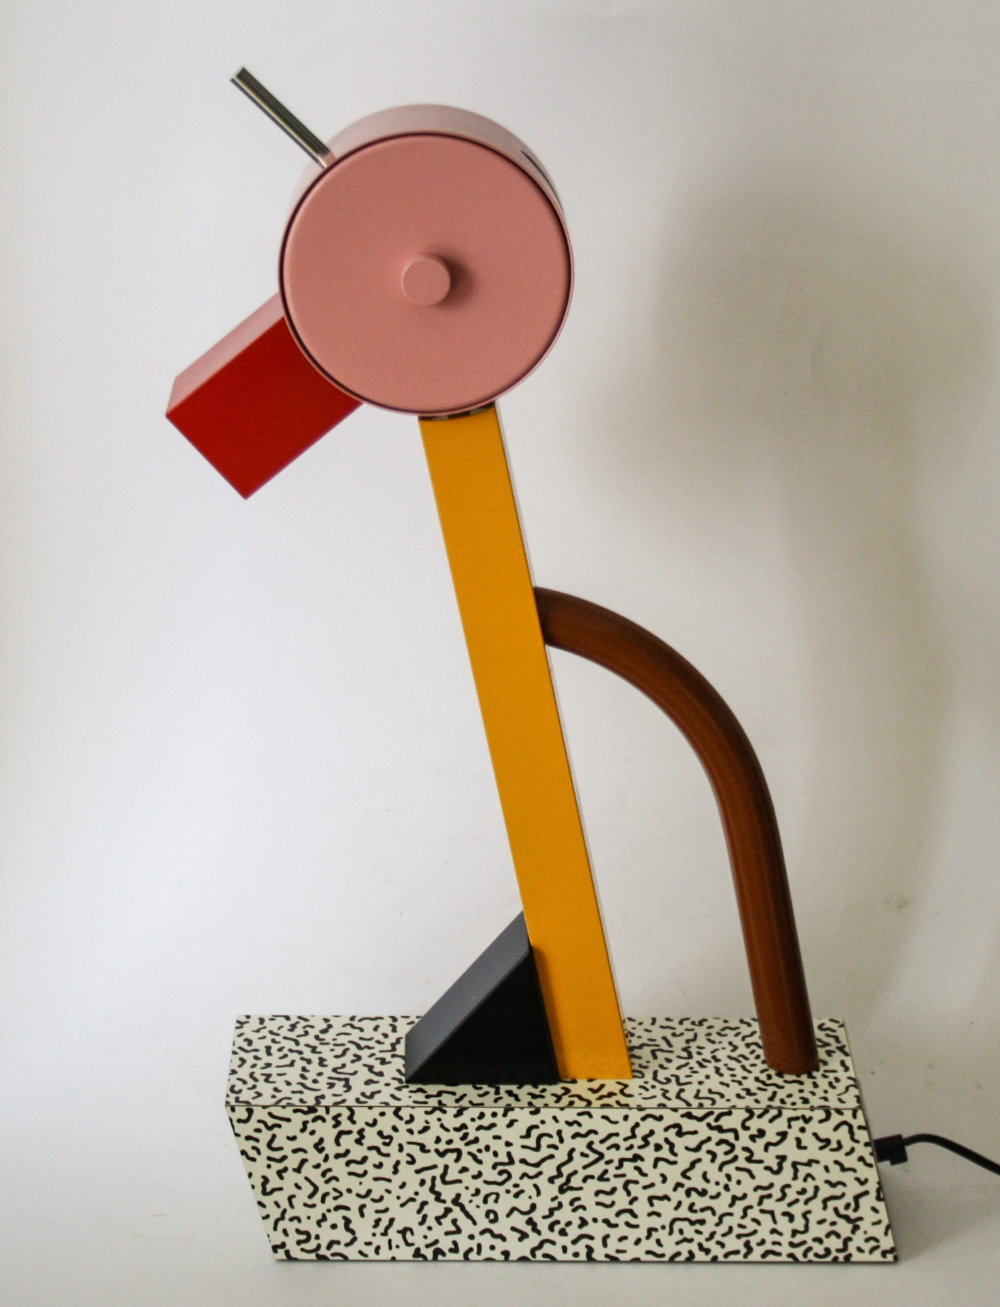 Tahiti Desk Light Table lamp Memphis Design Ettore Sottsass 1981 Vintage